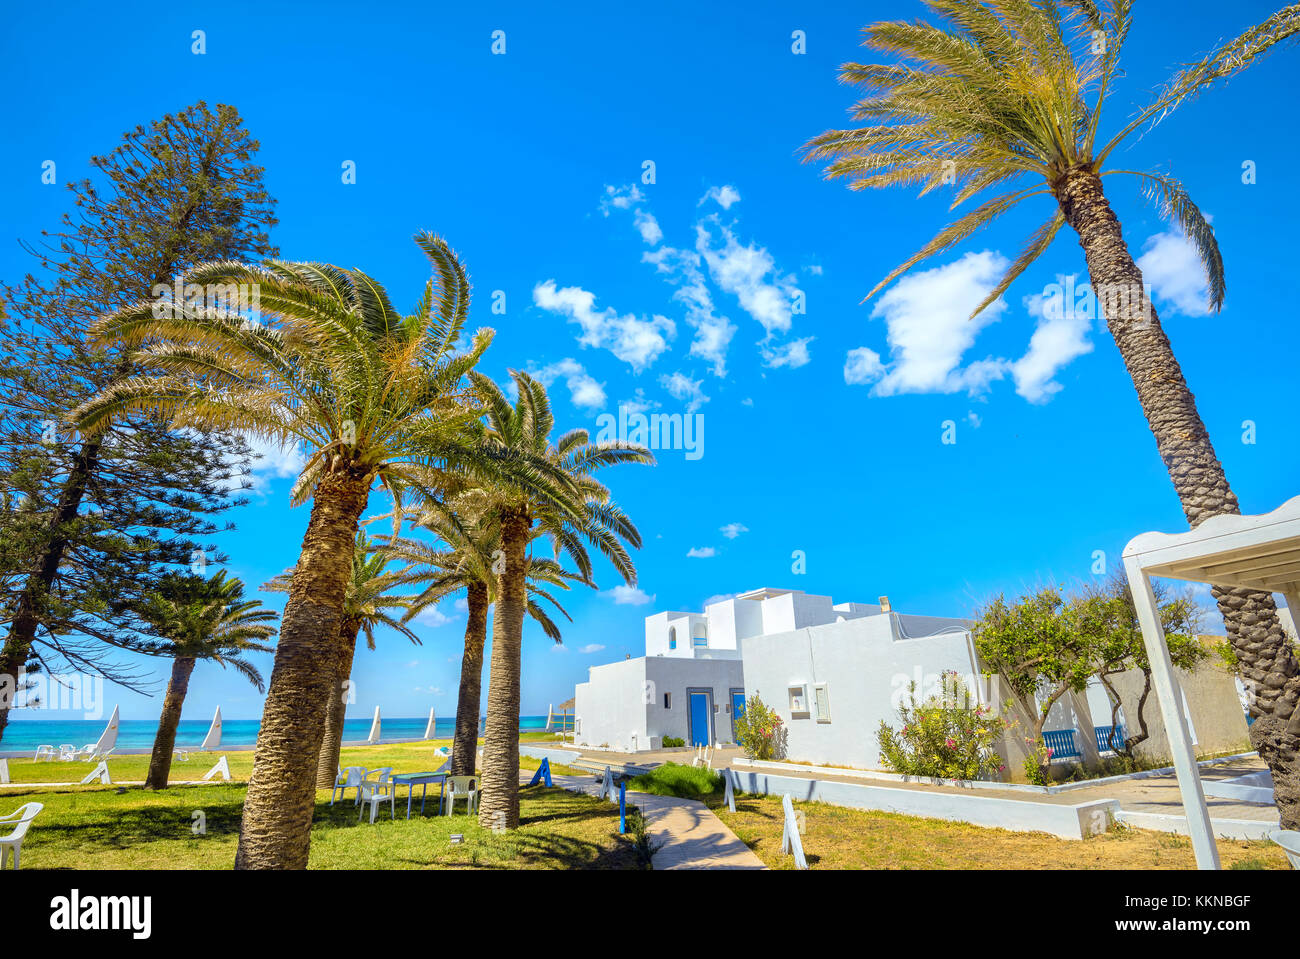 Shoreline of seaside resort in Nabeul. Tunisia, North Africa - Stock Image